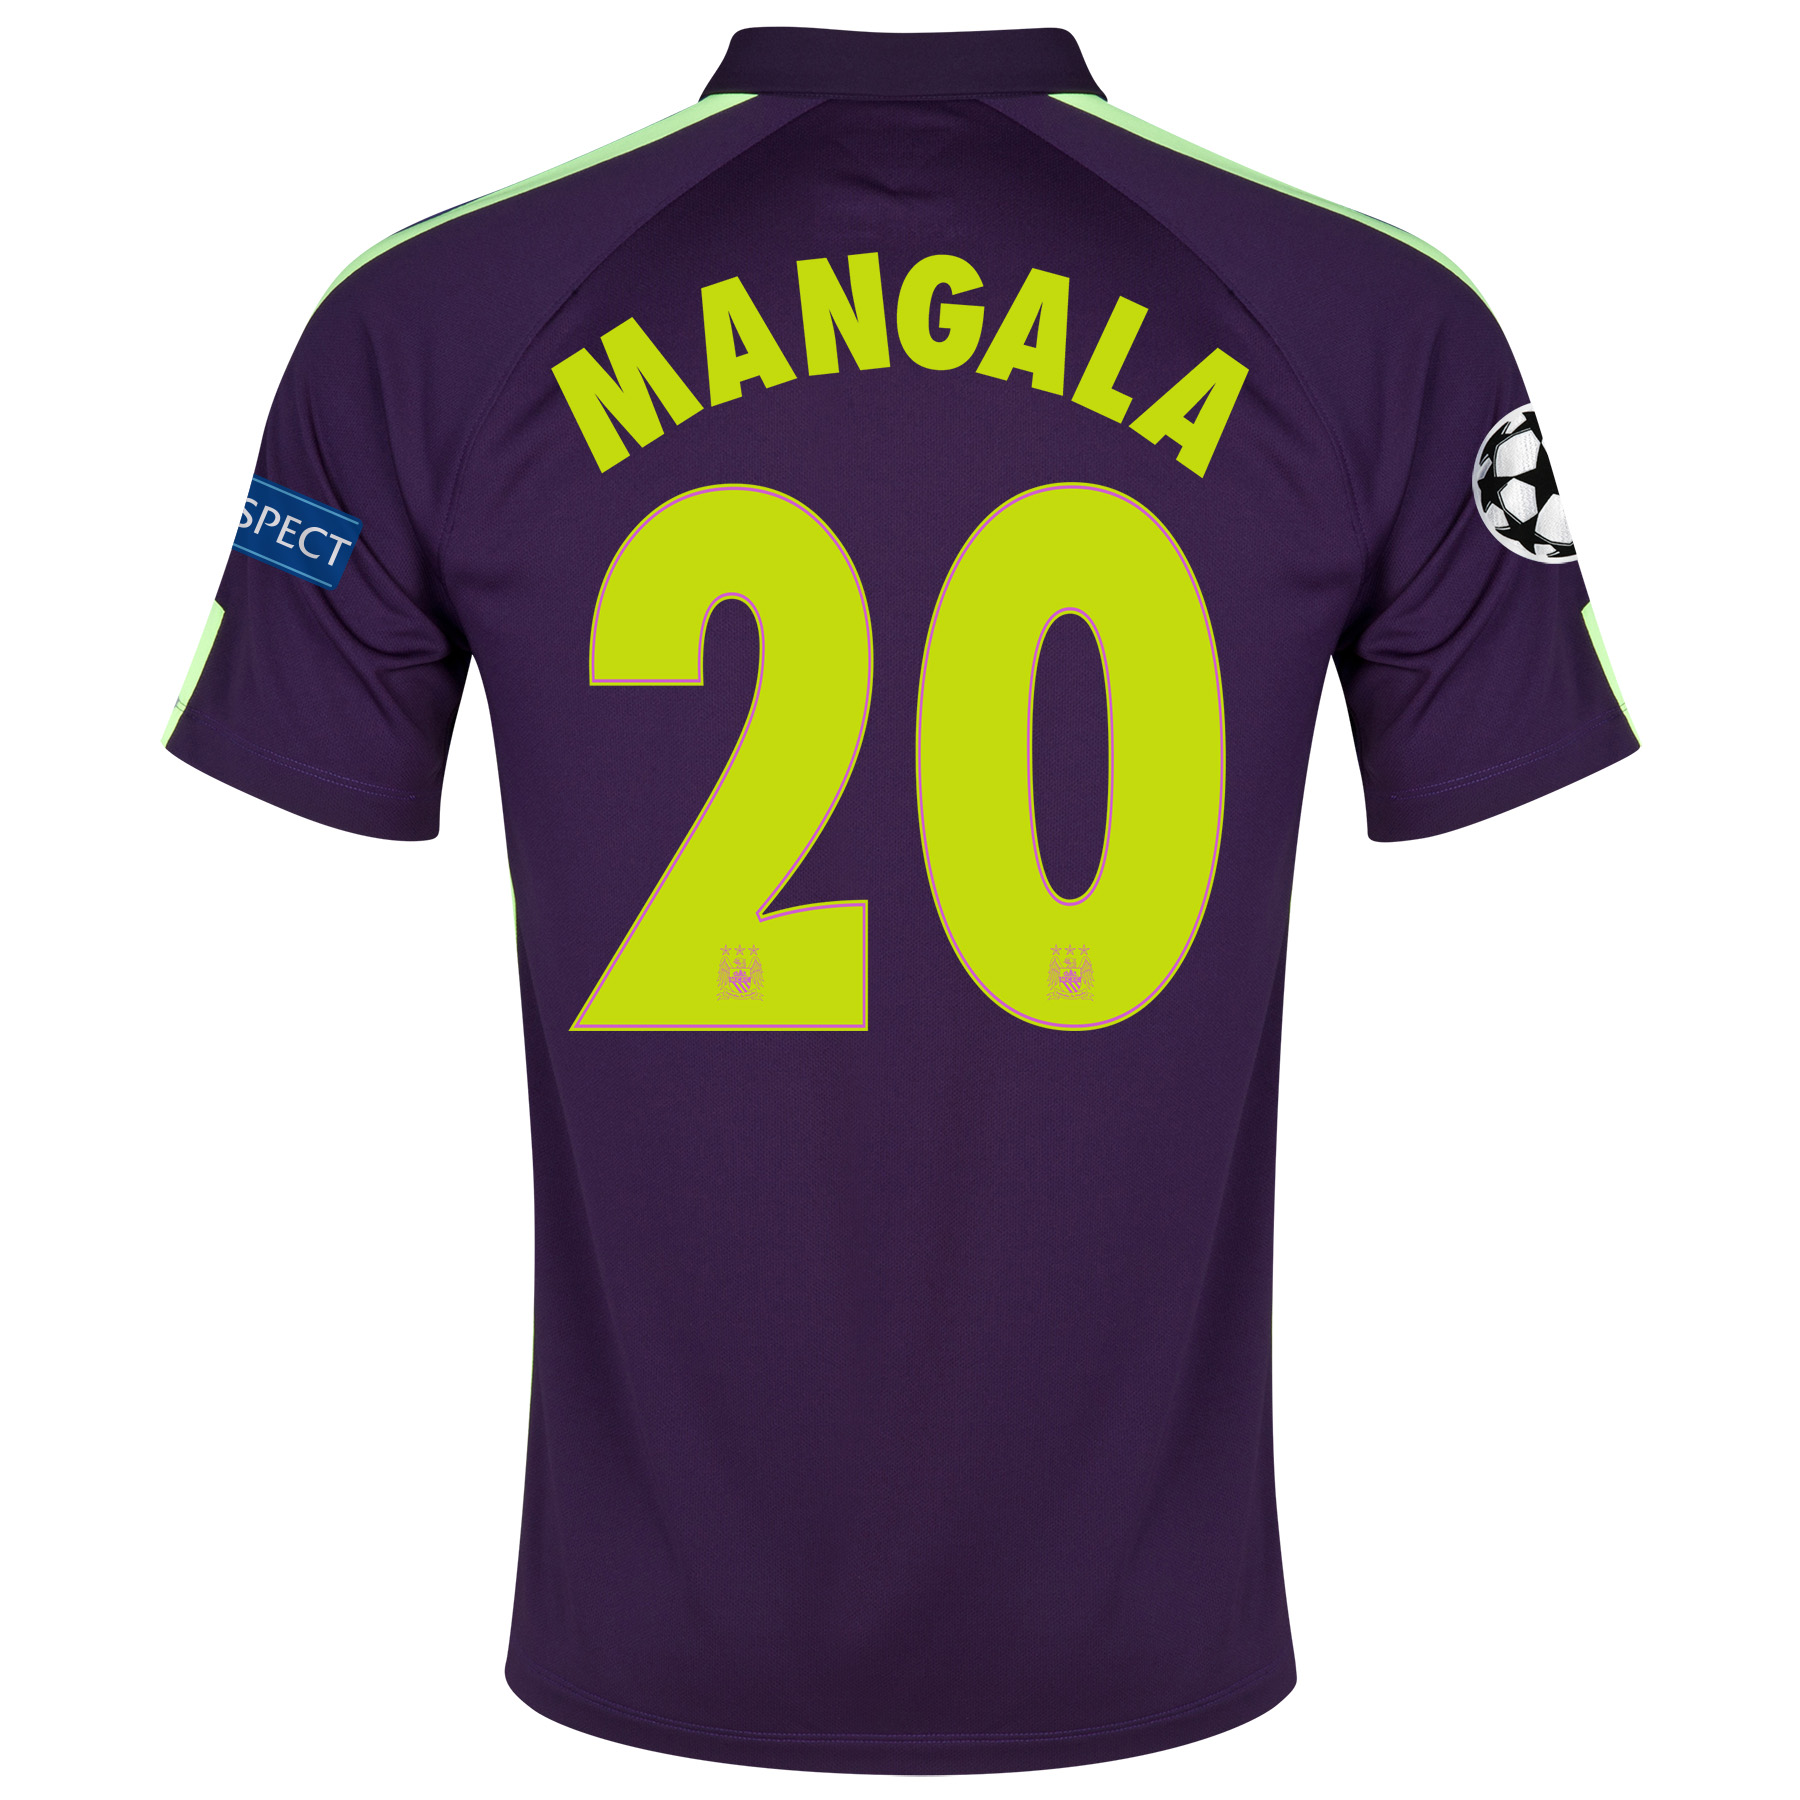 Manchester City UEFA Champions League Cup Away Kit 2014/15 - Little Boys Purple with Mangala 20 printing